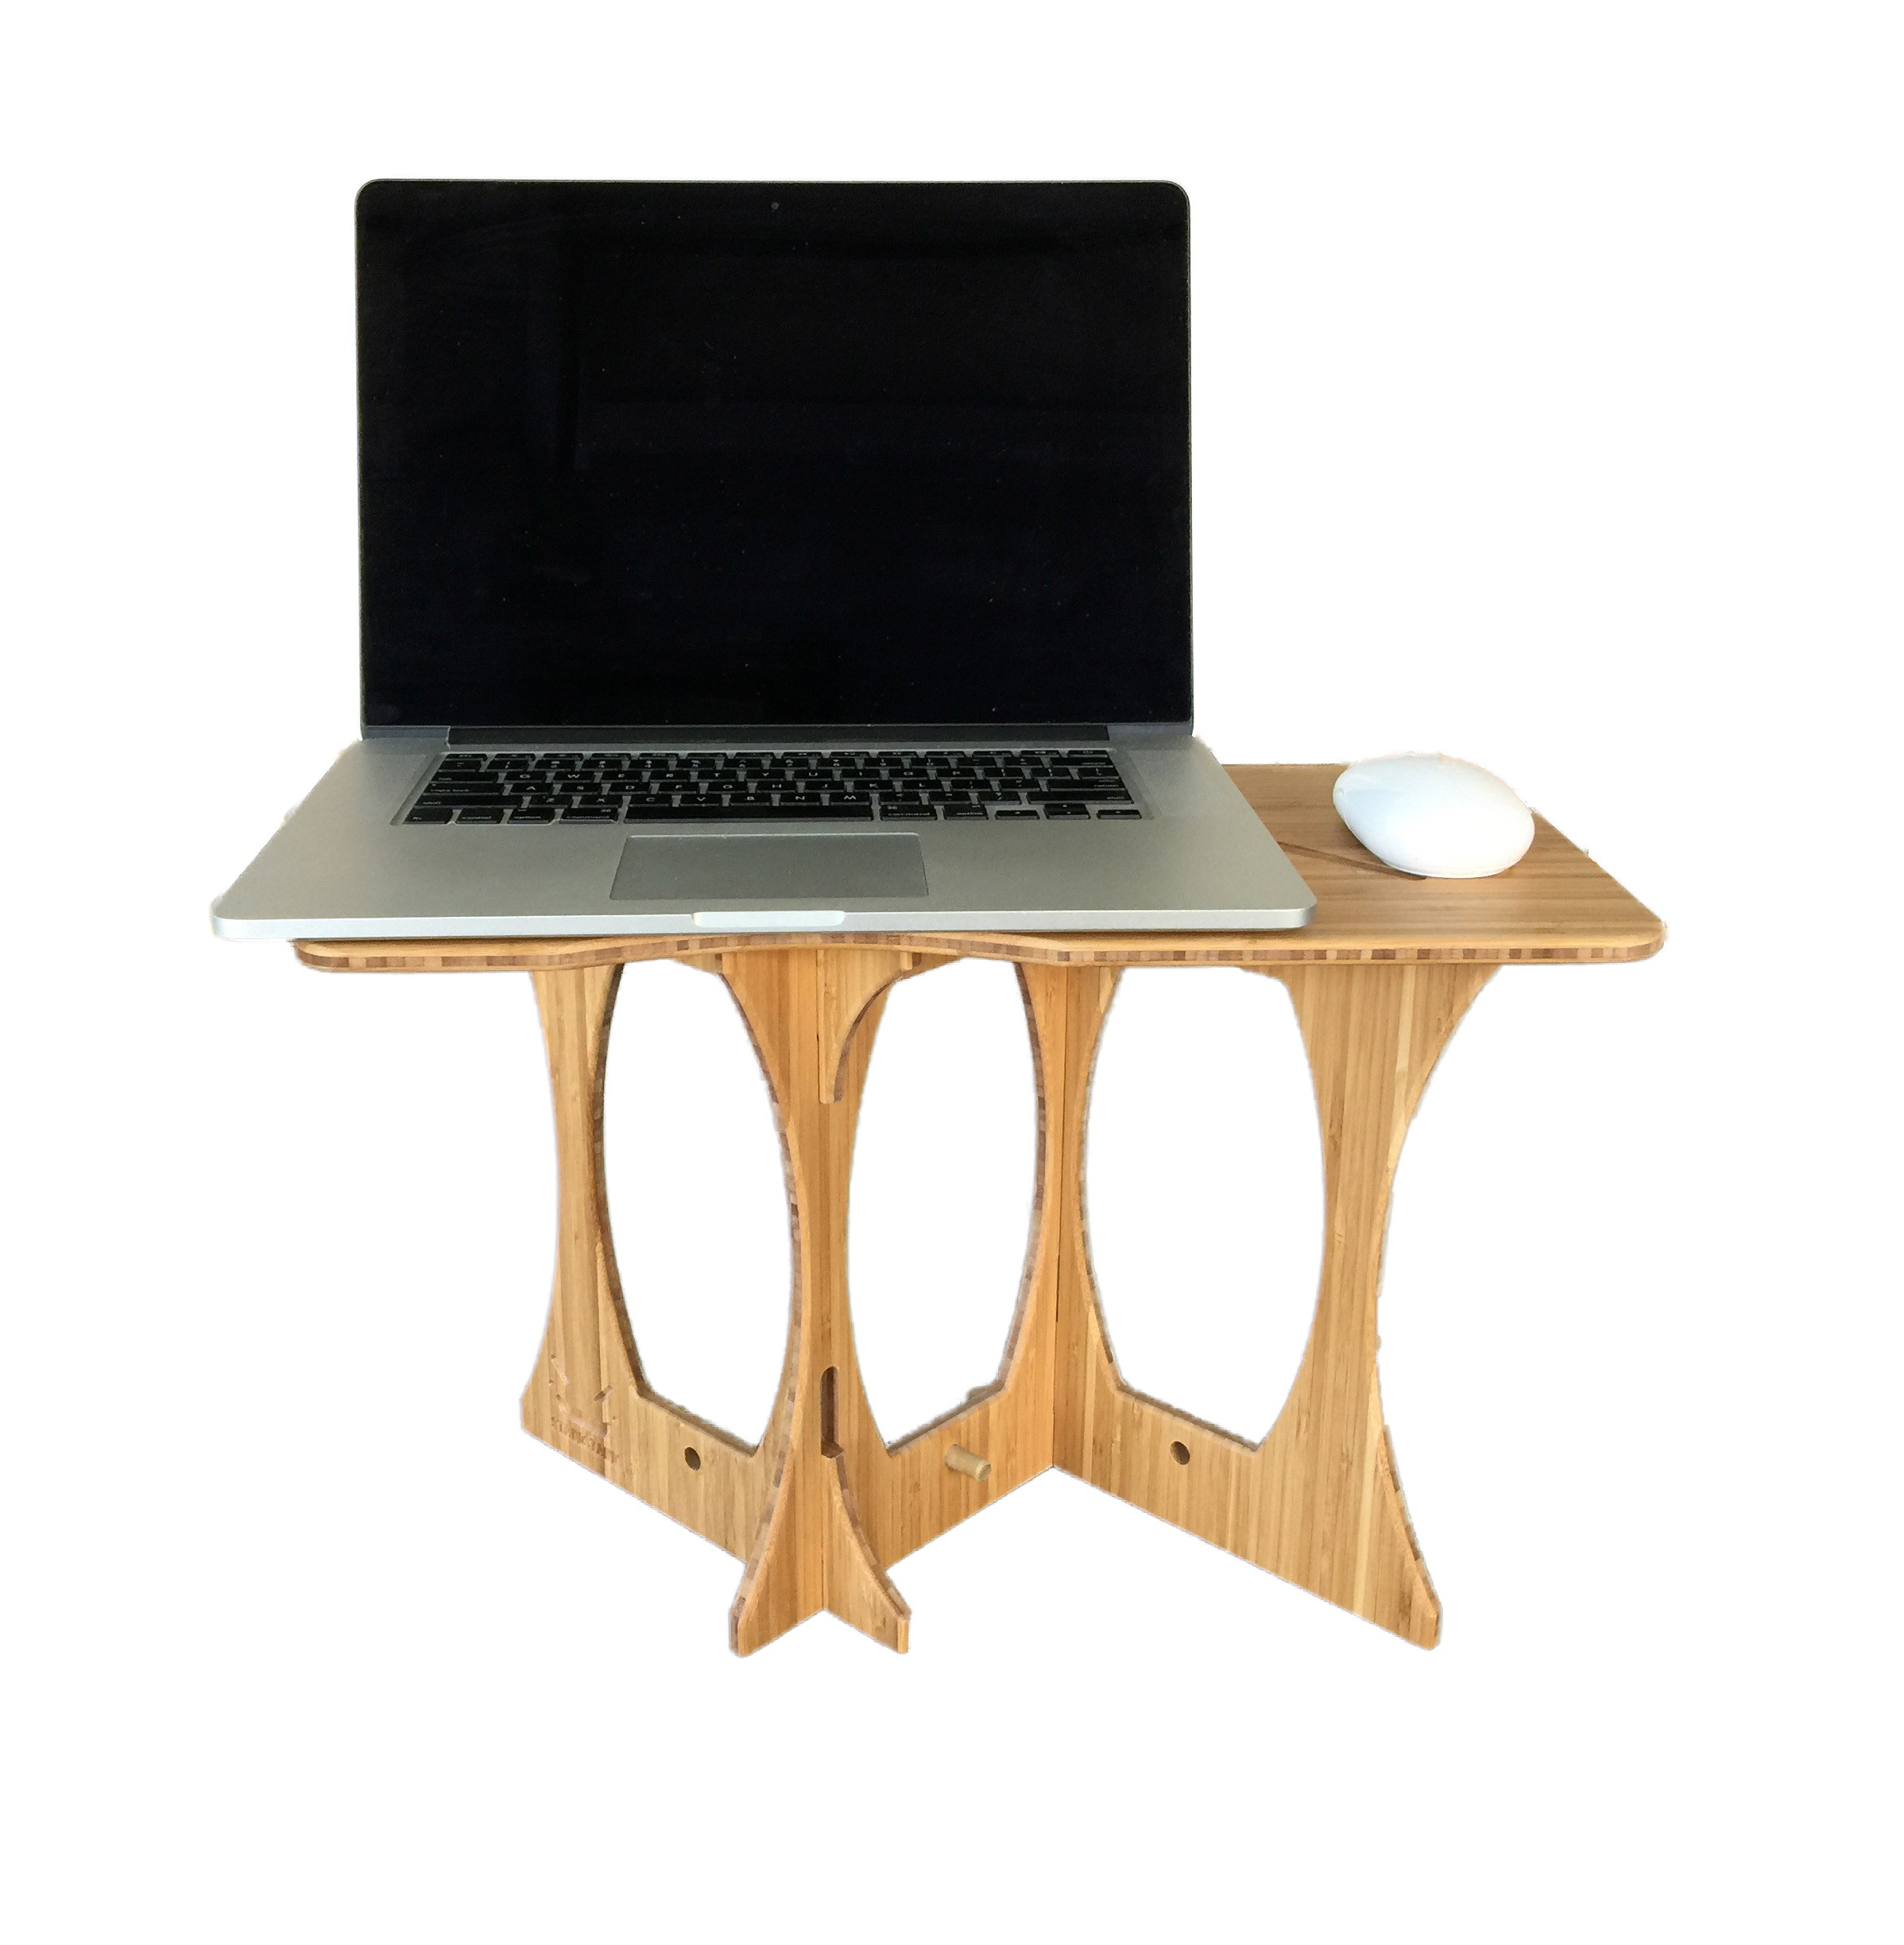 desk bam standing standstand stand grand portable laptop the ssg